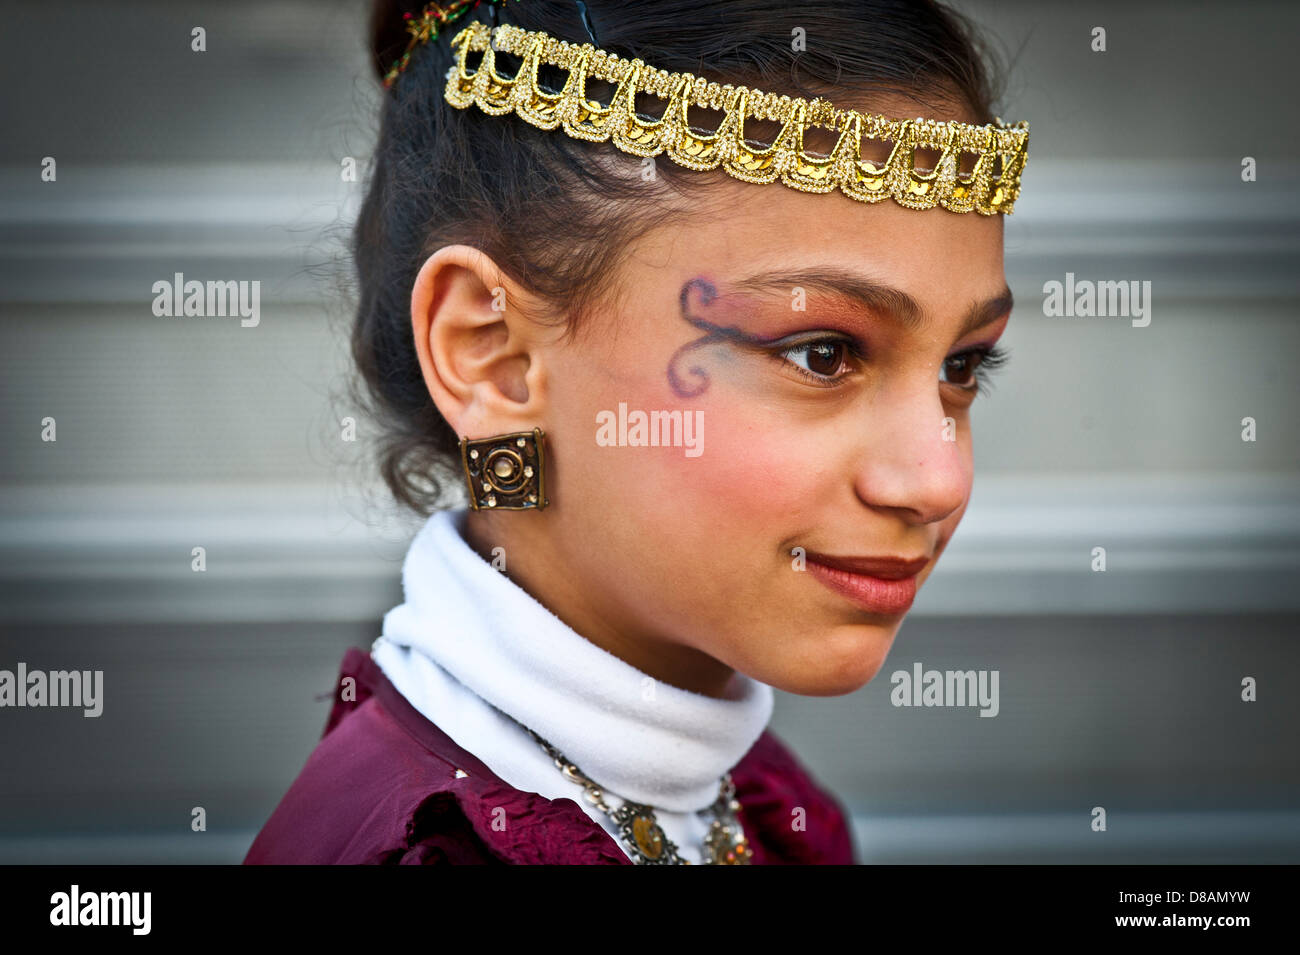 A young orthodox girl in Purim costume Photographed in Bnei Brak, Israel - Stock Image